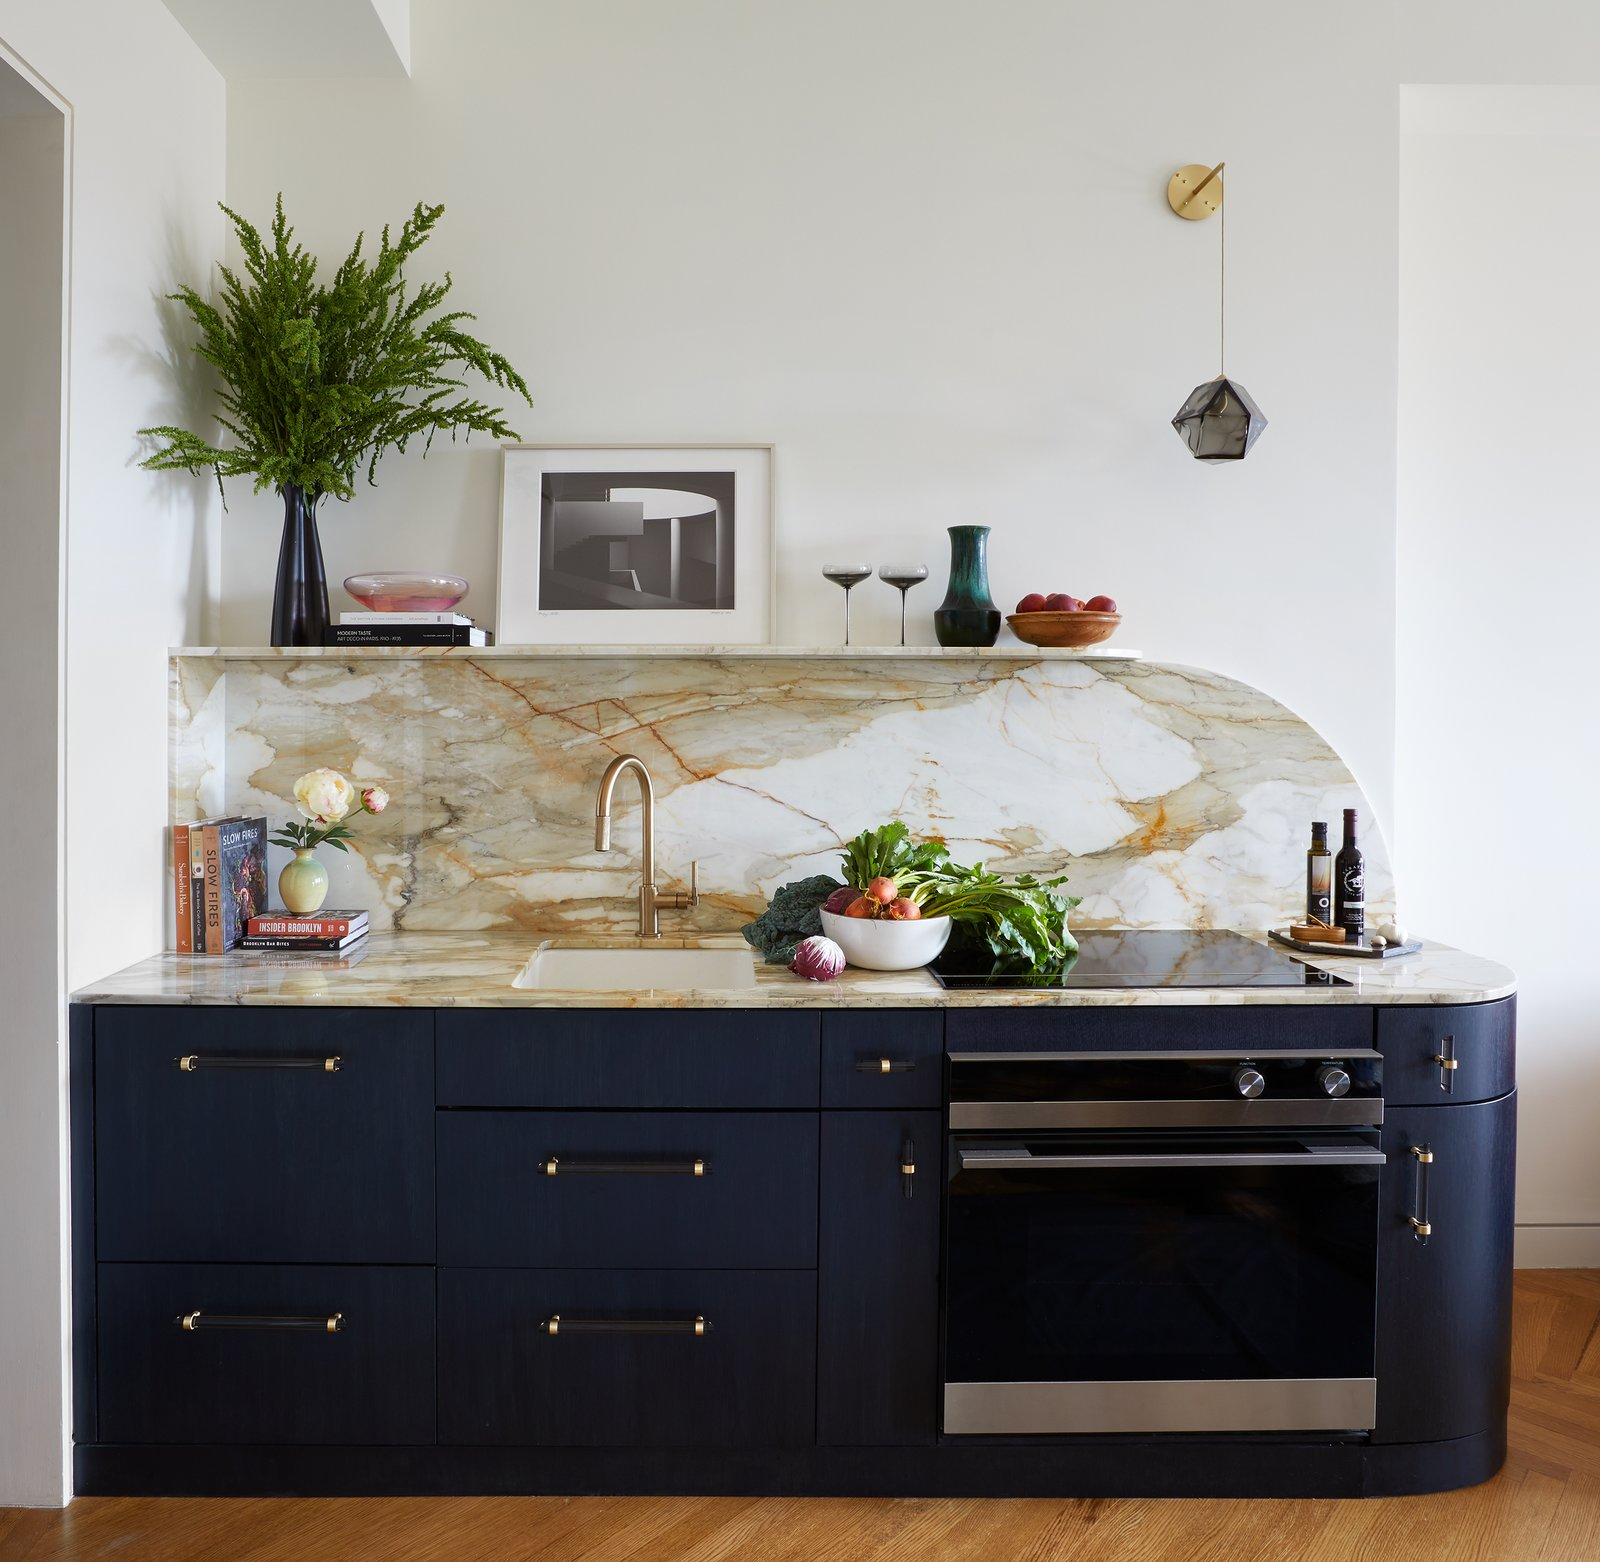 AFter: Brooklyn Art Deco Duplex kitchen